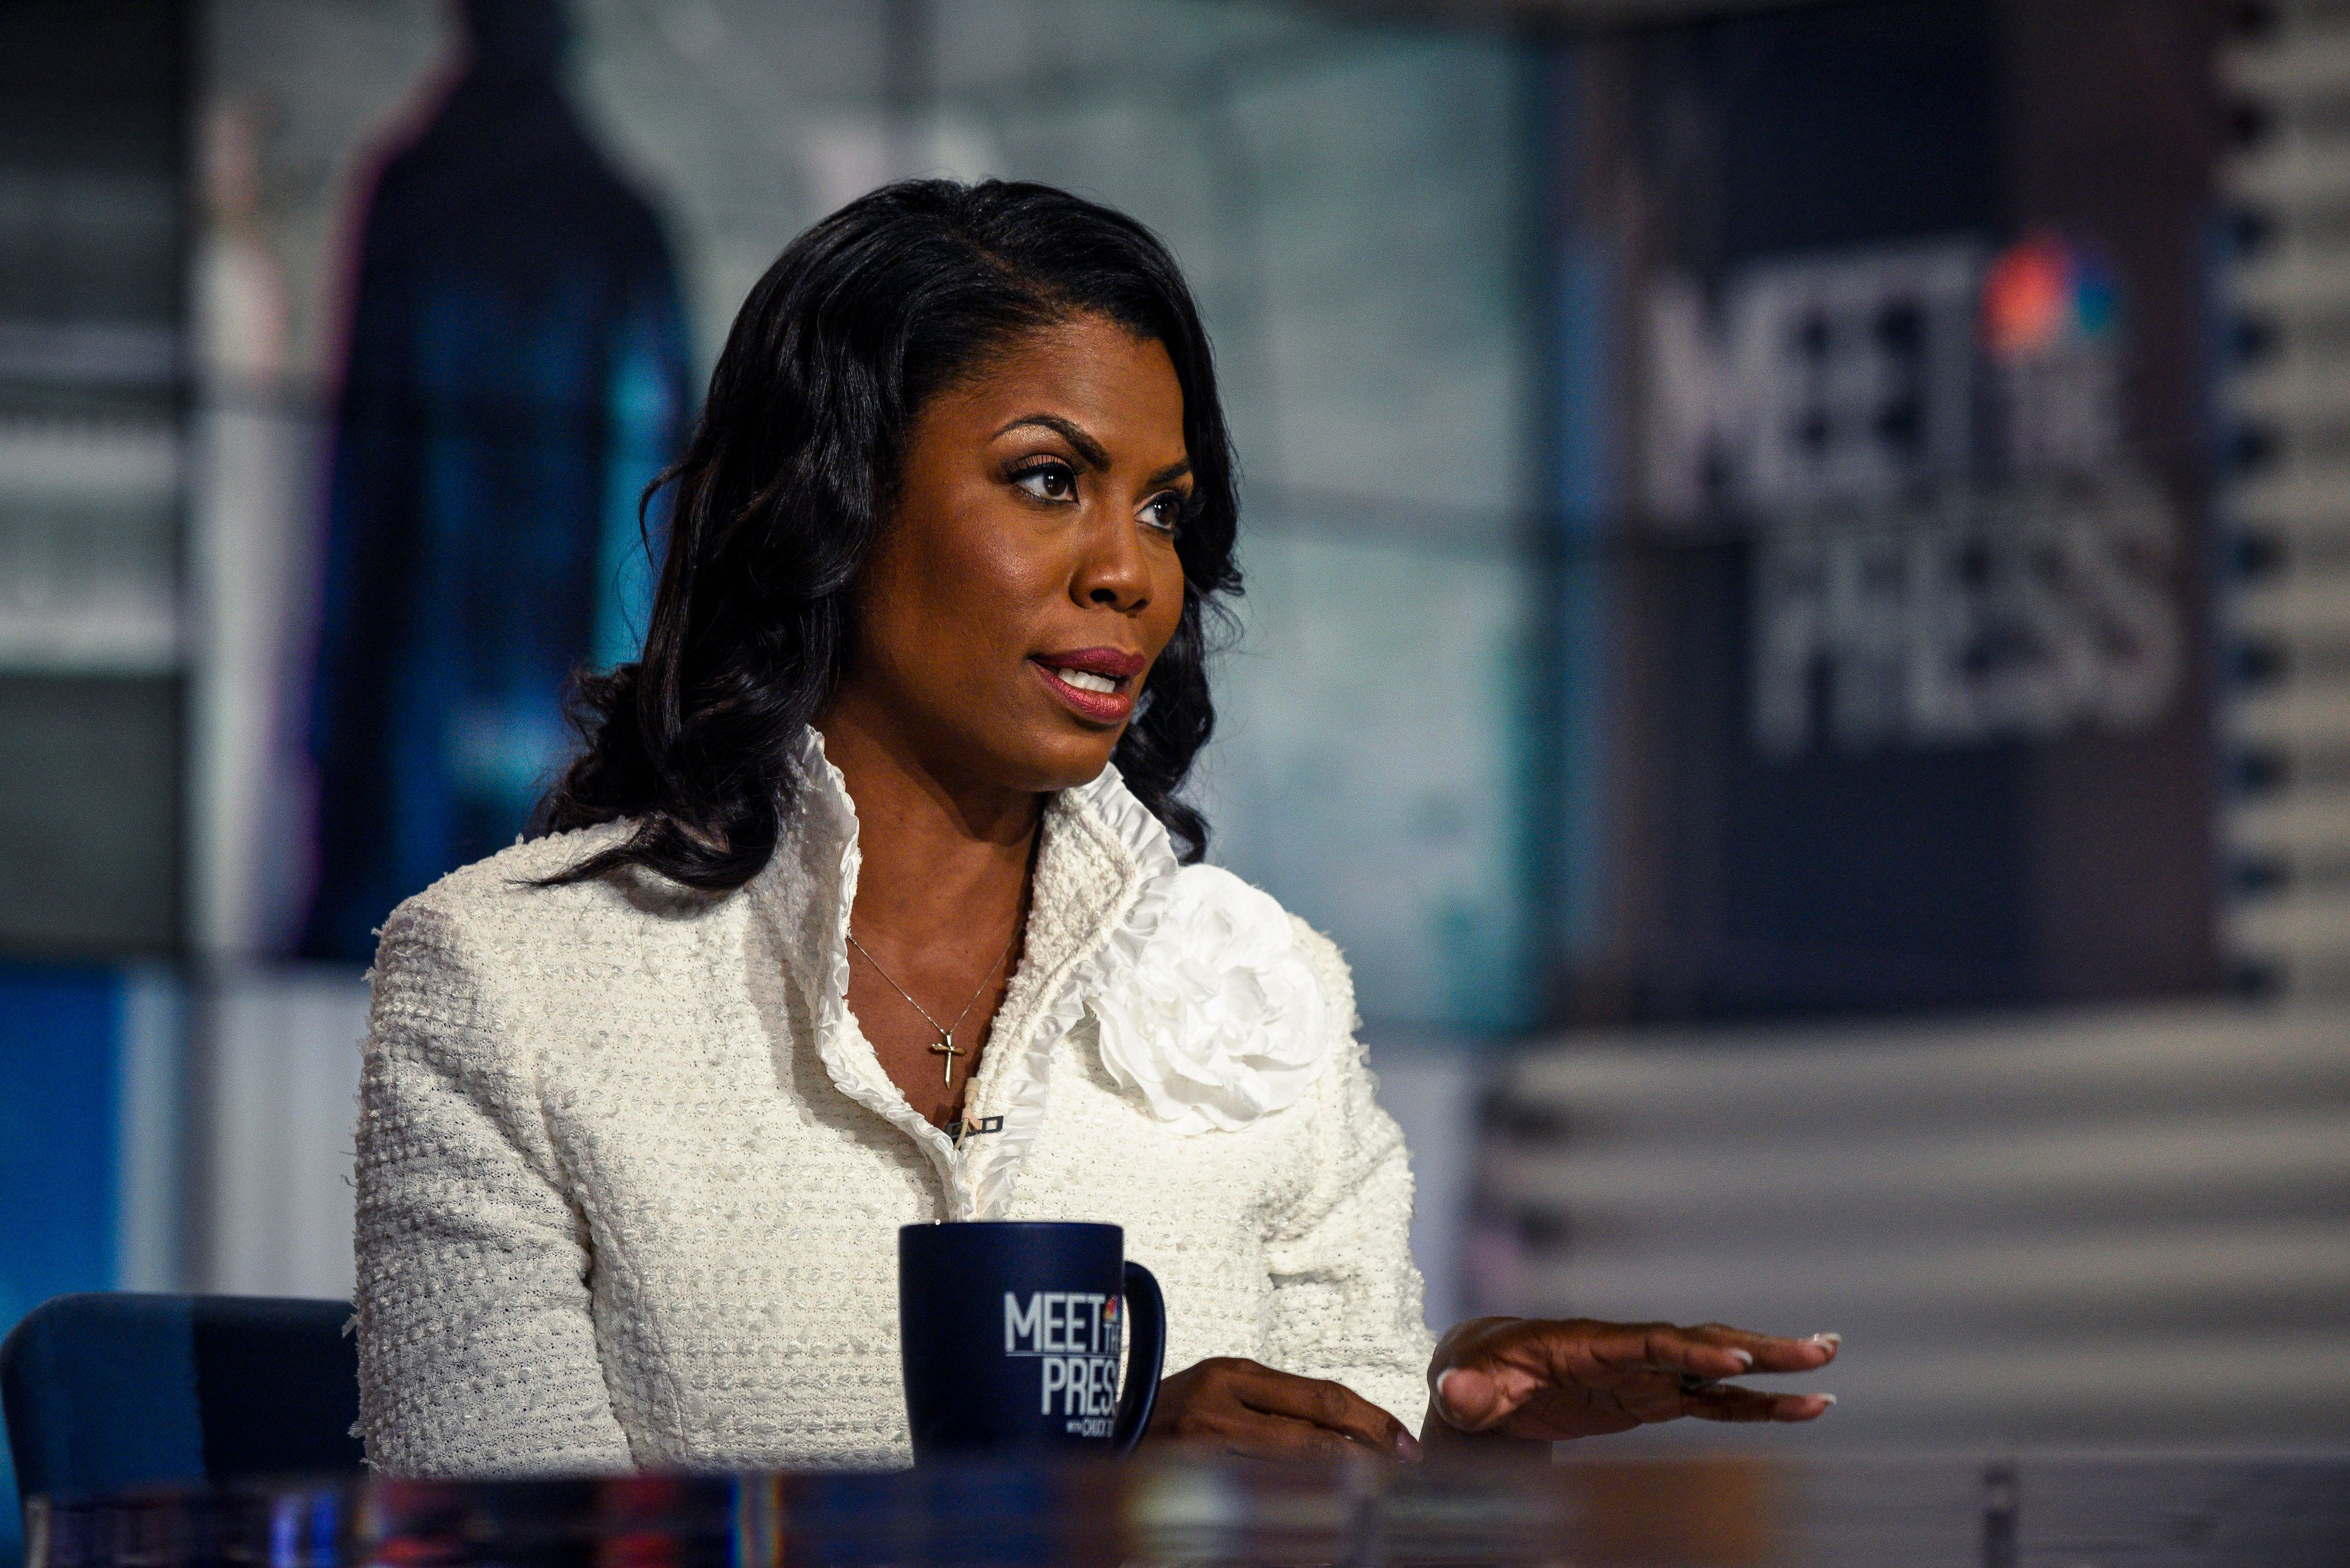 Exclusive Omarosa Said Former TV Contestant Played Tape Of Racist Slur For Her In White House Sources Say